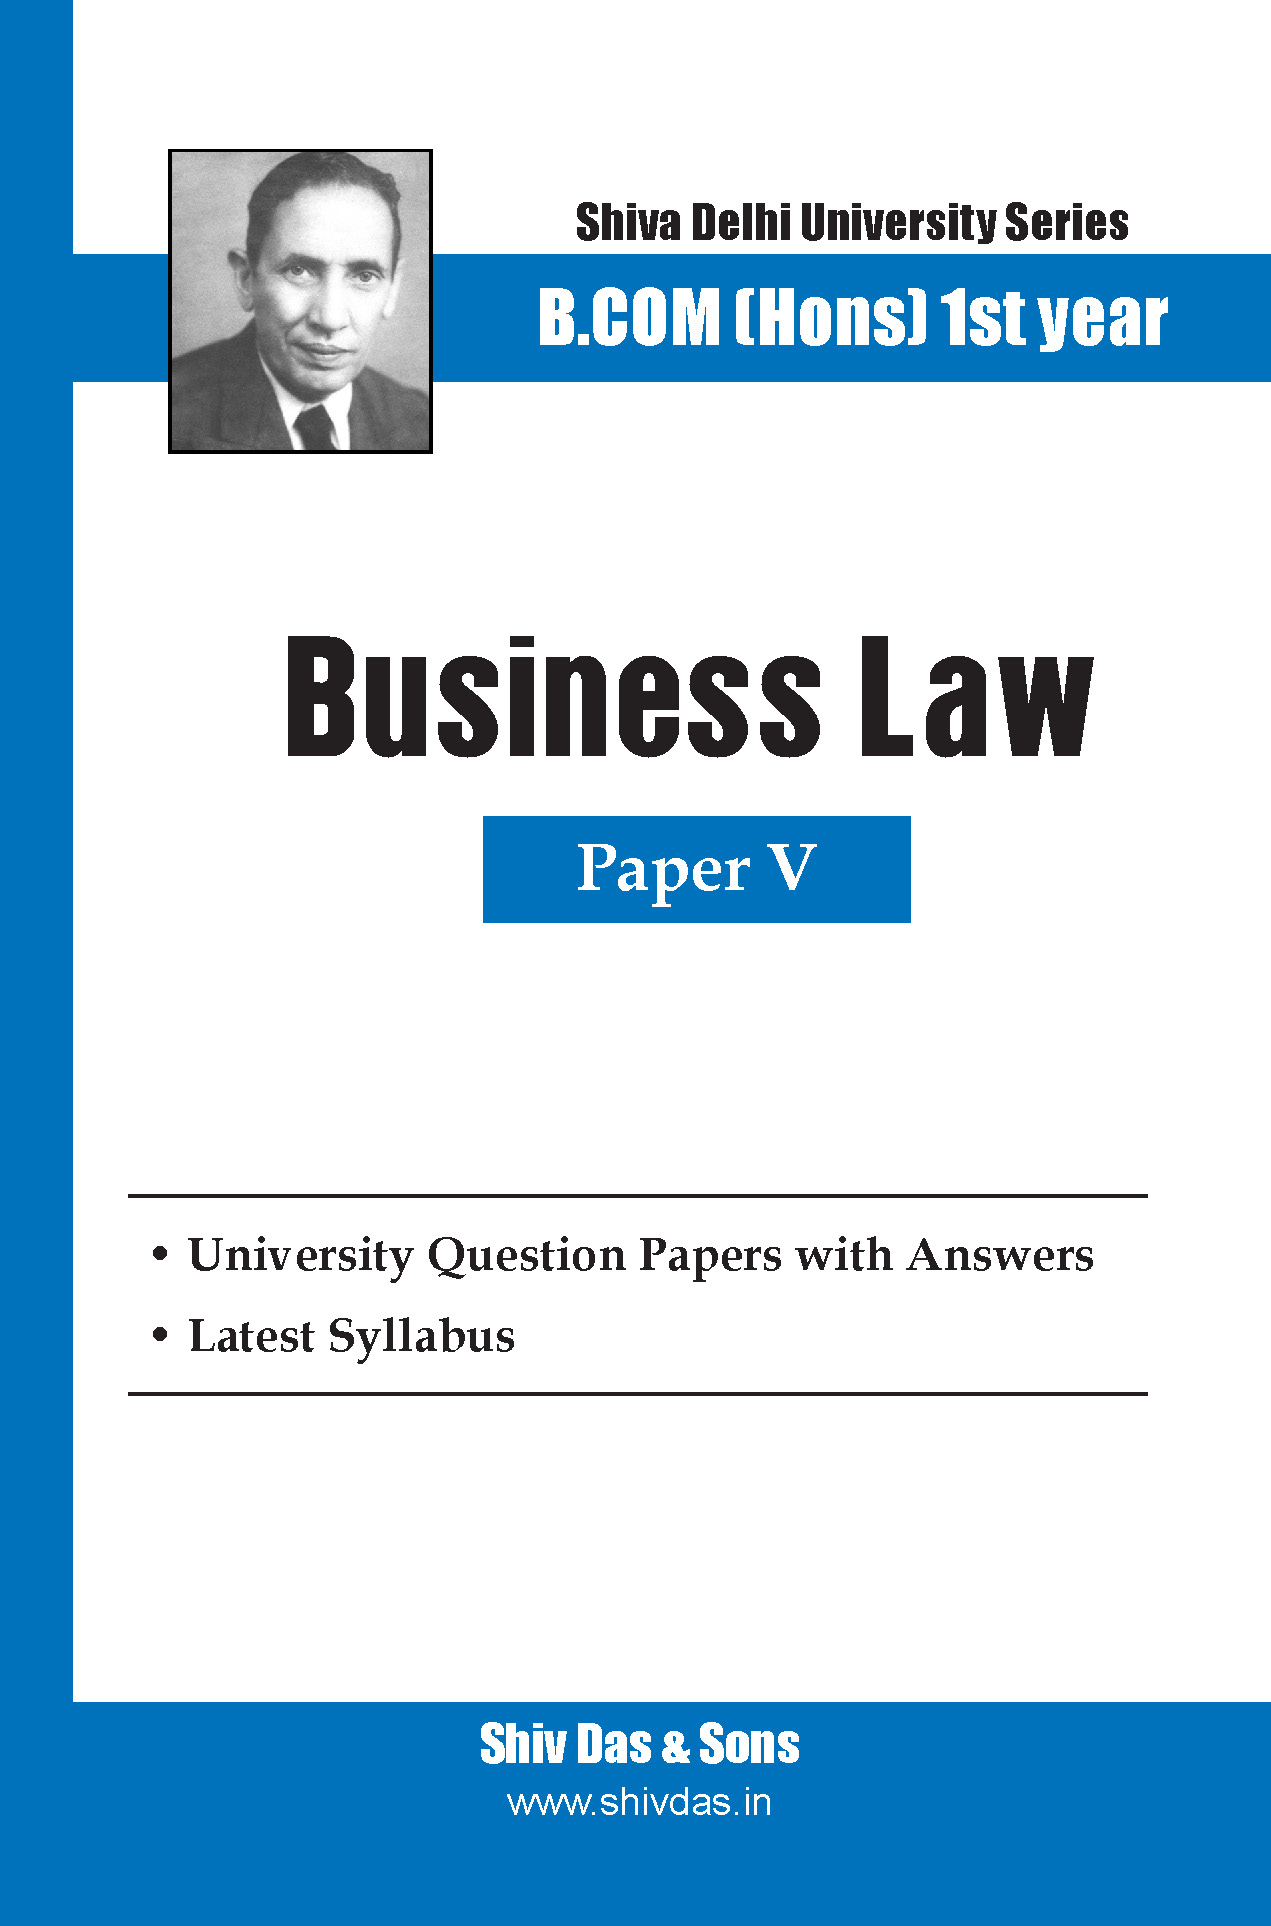 Business law for B.Com Hons-SOL/External 1st Year